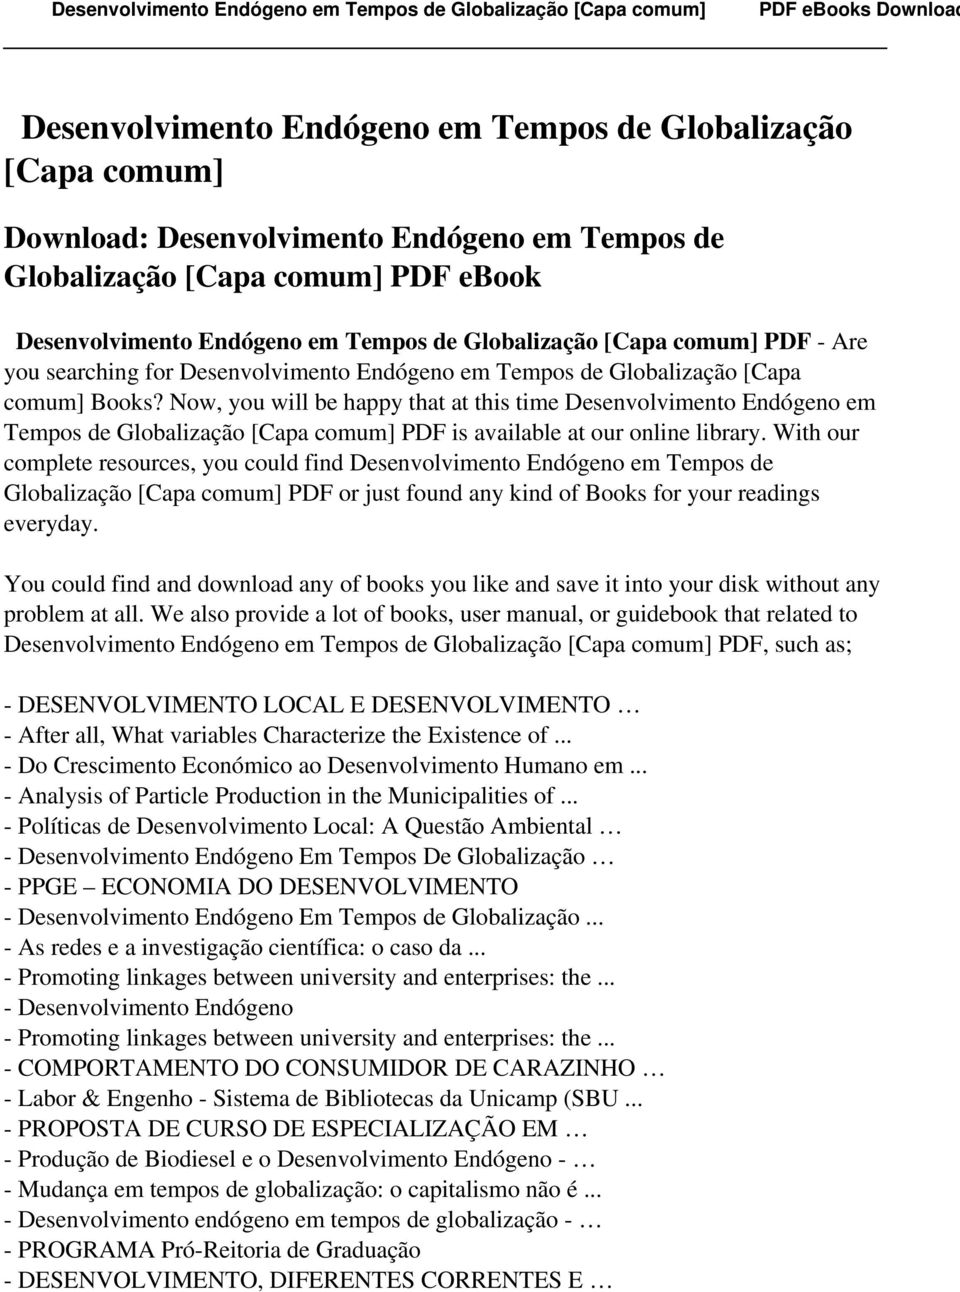 Now, you will be happy that at this time Desenvolvimento Endógeno em Tempos de Globalização [Capa comum] PDF is available at our online library.